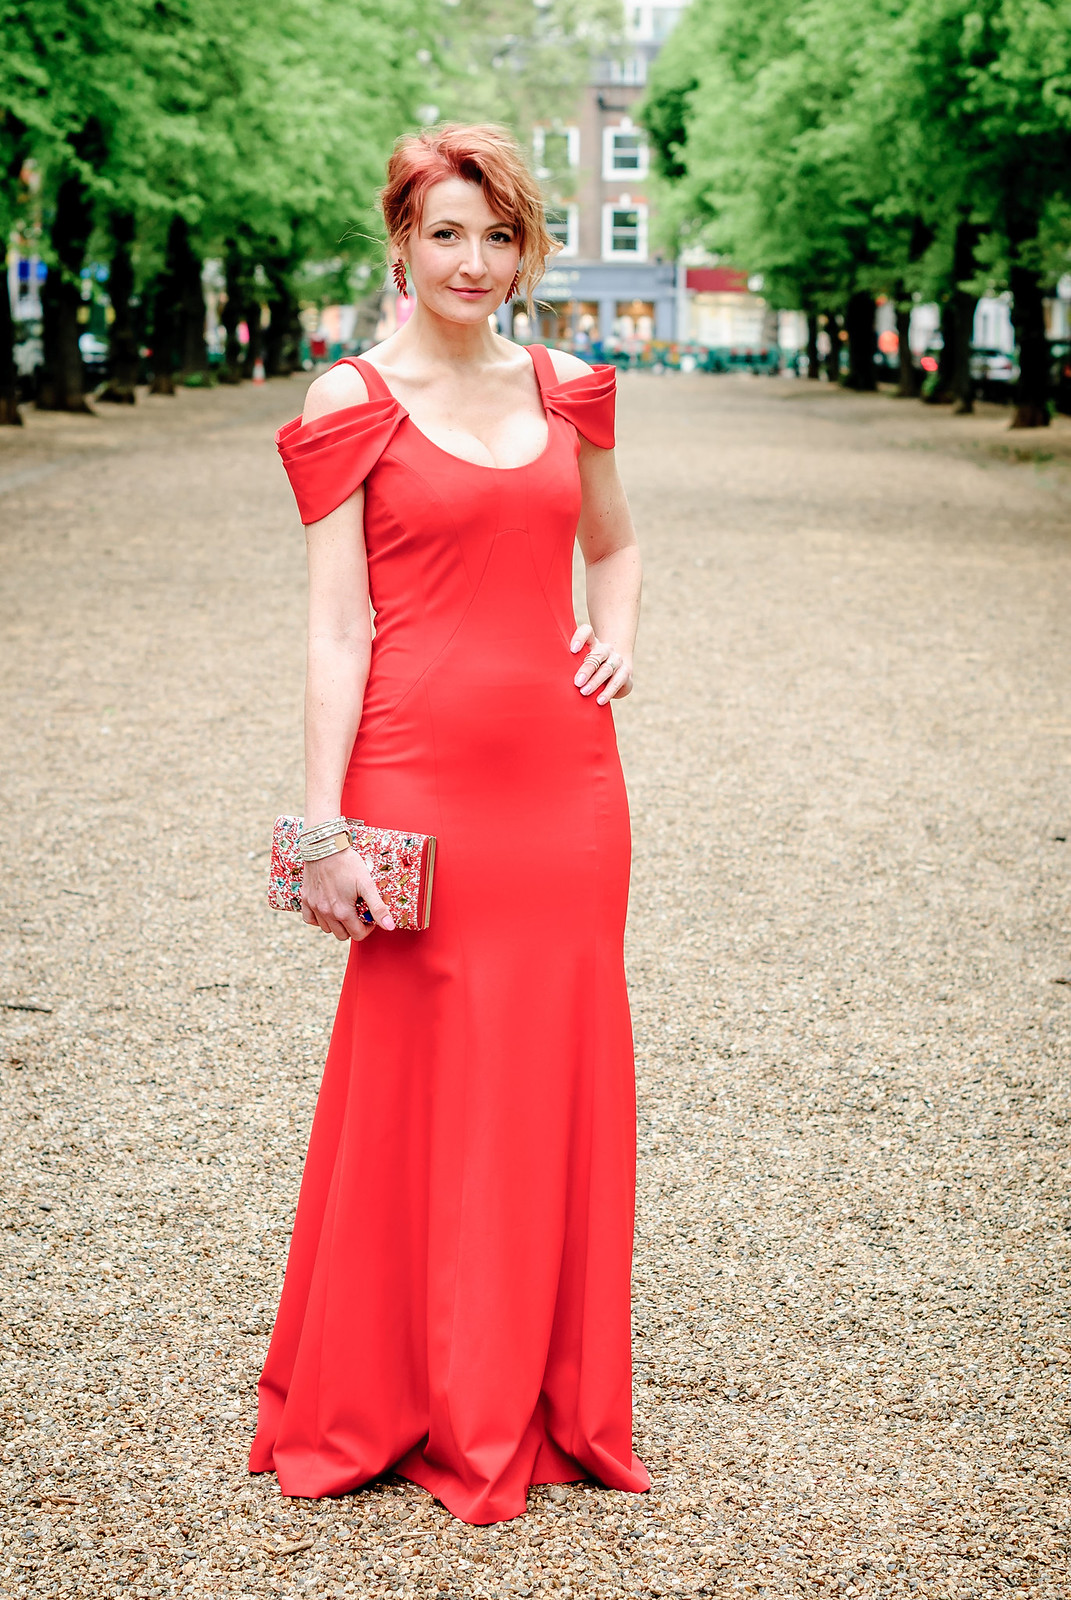 Awards ceremony outfit - Long red fitted gown with shoulder detail crystal embellished box clutch red crystal earrings | Not Dressed As Lamb, over 40 style